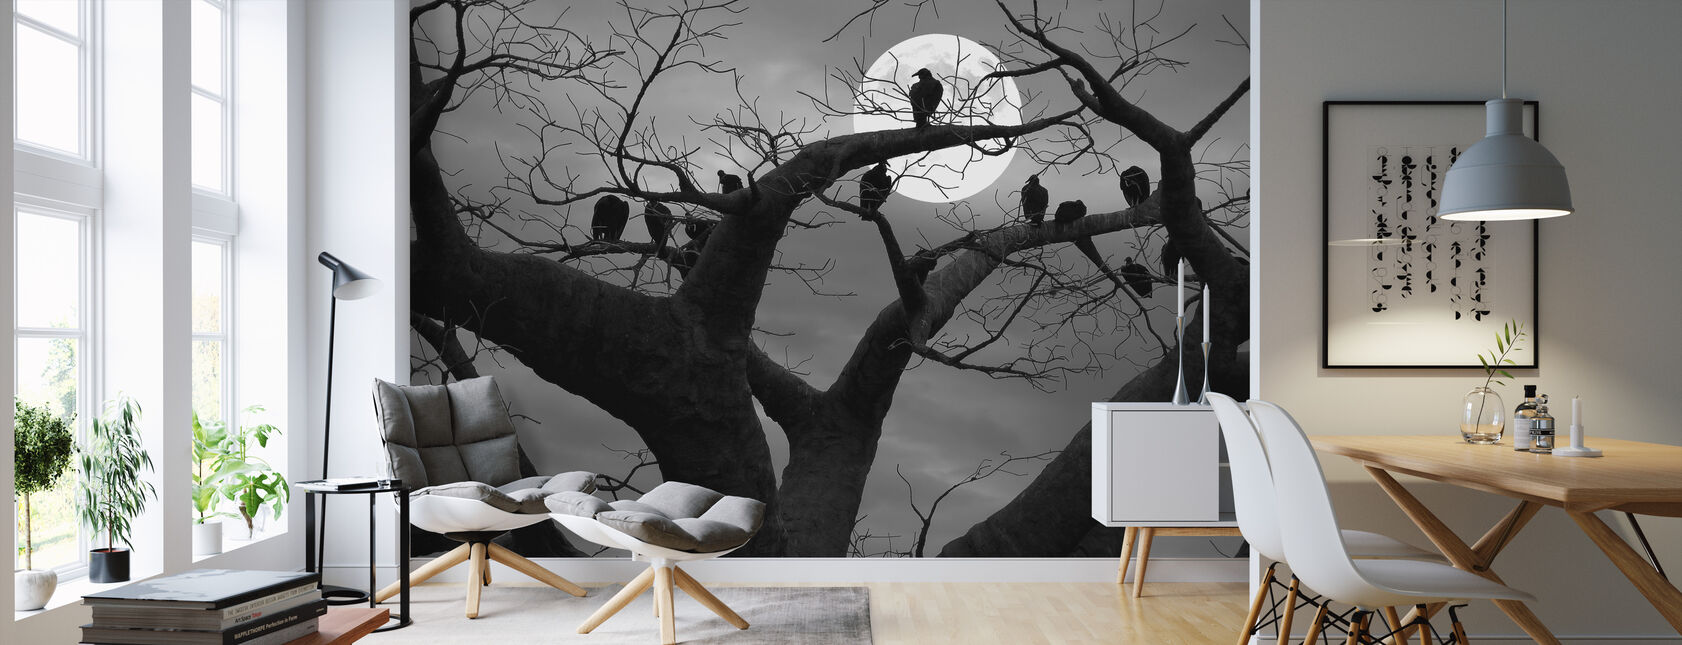 Spooky Tree - Wallpaper - Living Room